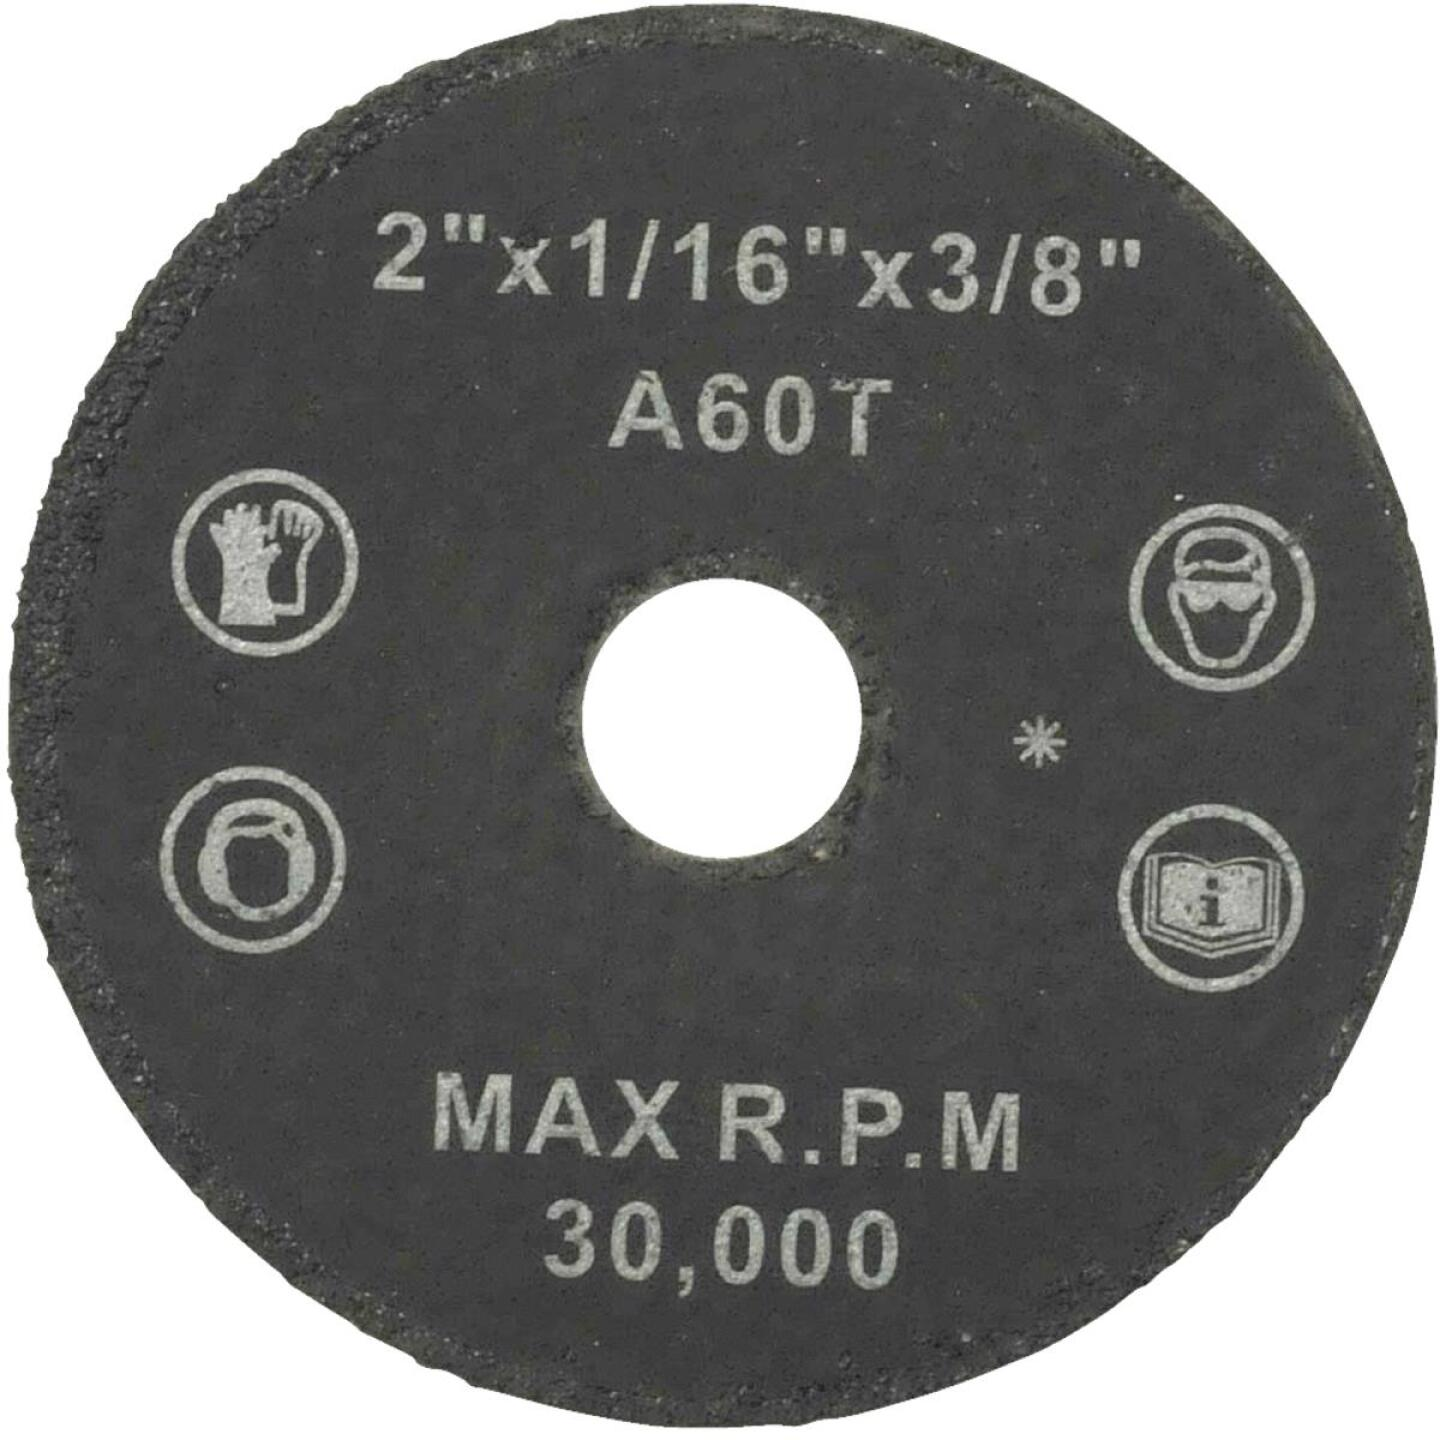 Weiler Vortec Type 1 2 In. x 1/16 In. x 3/8 In. Metal/Plastic Cut-Off Wheel Image 1